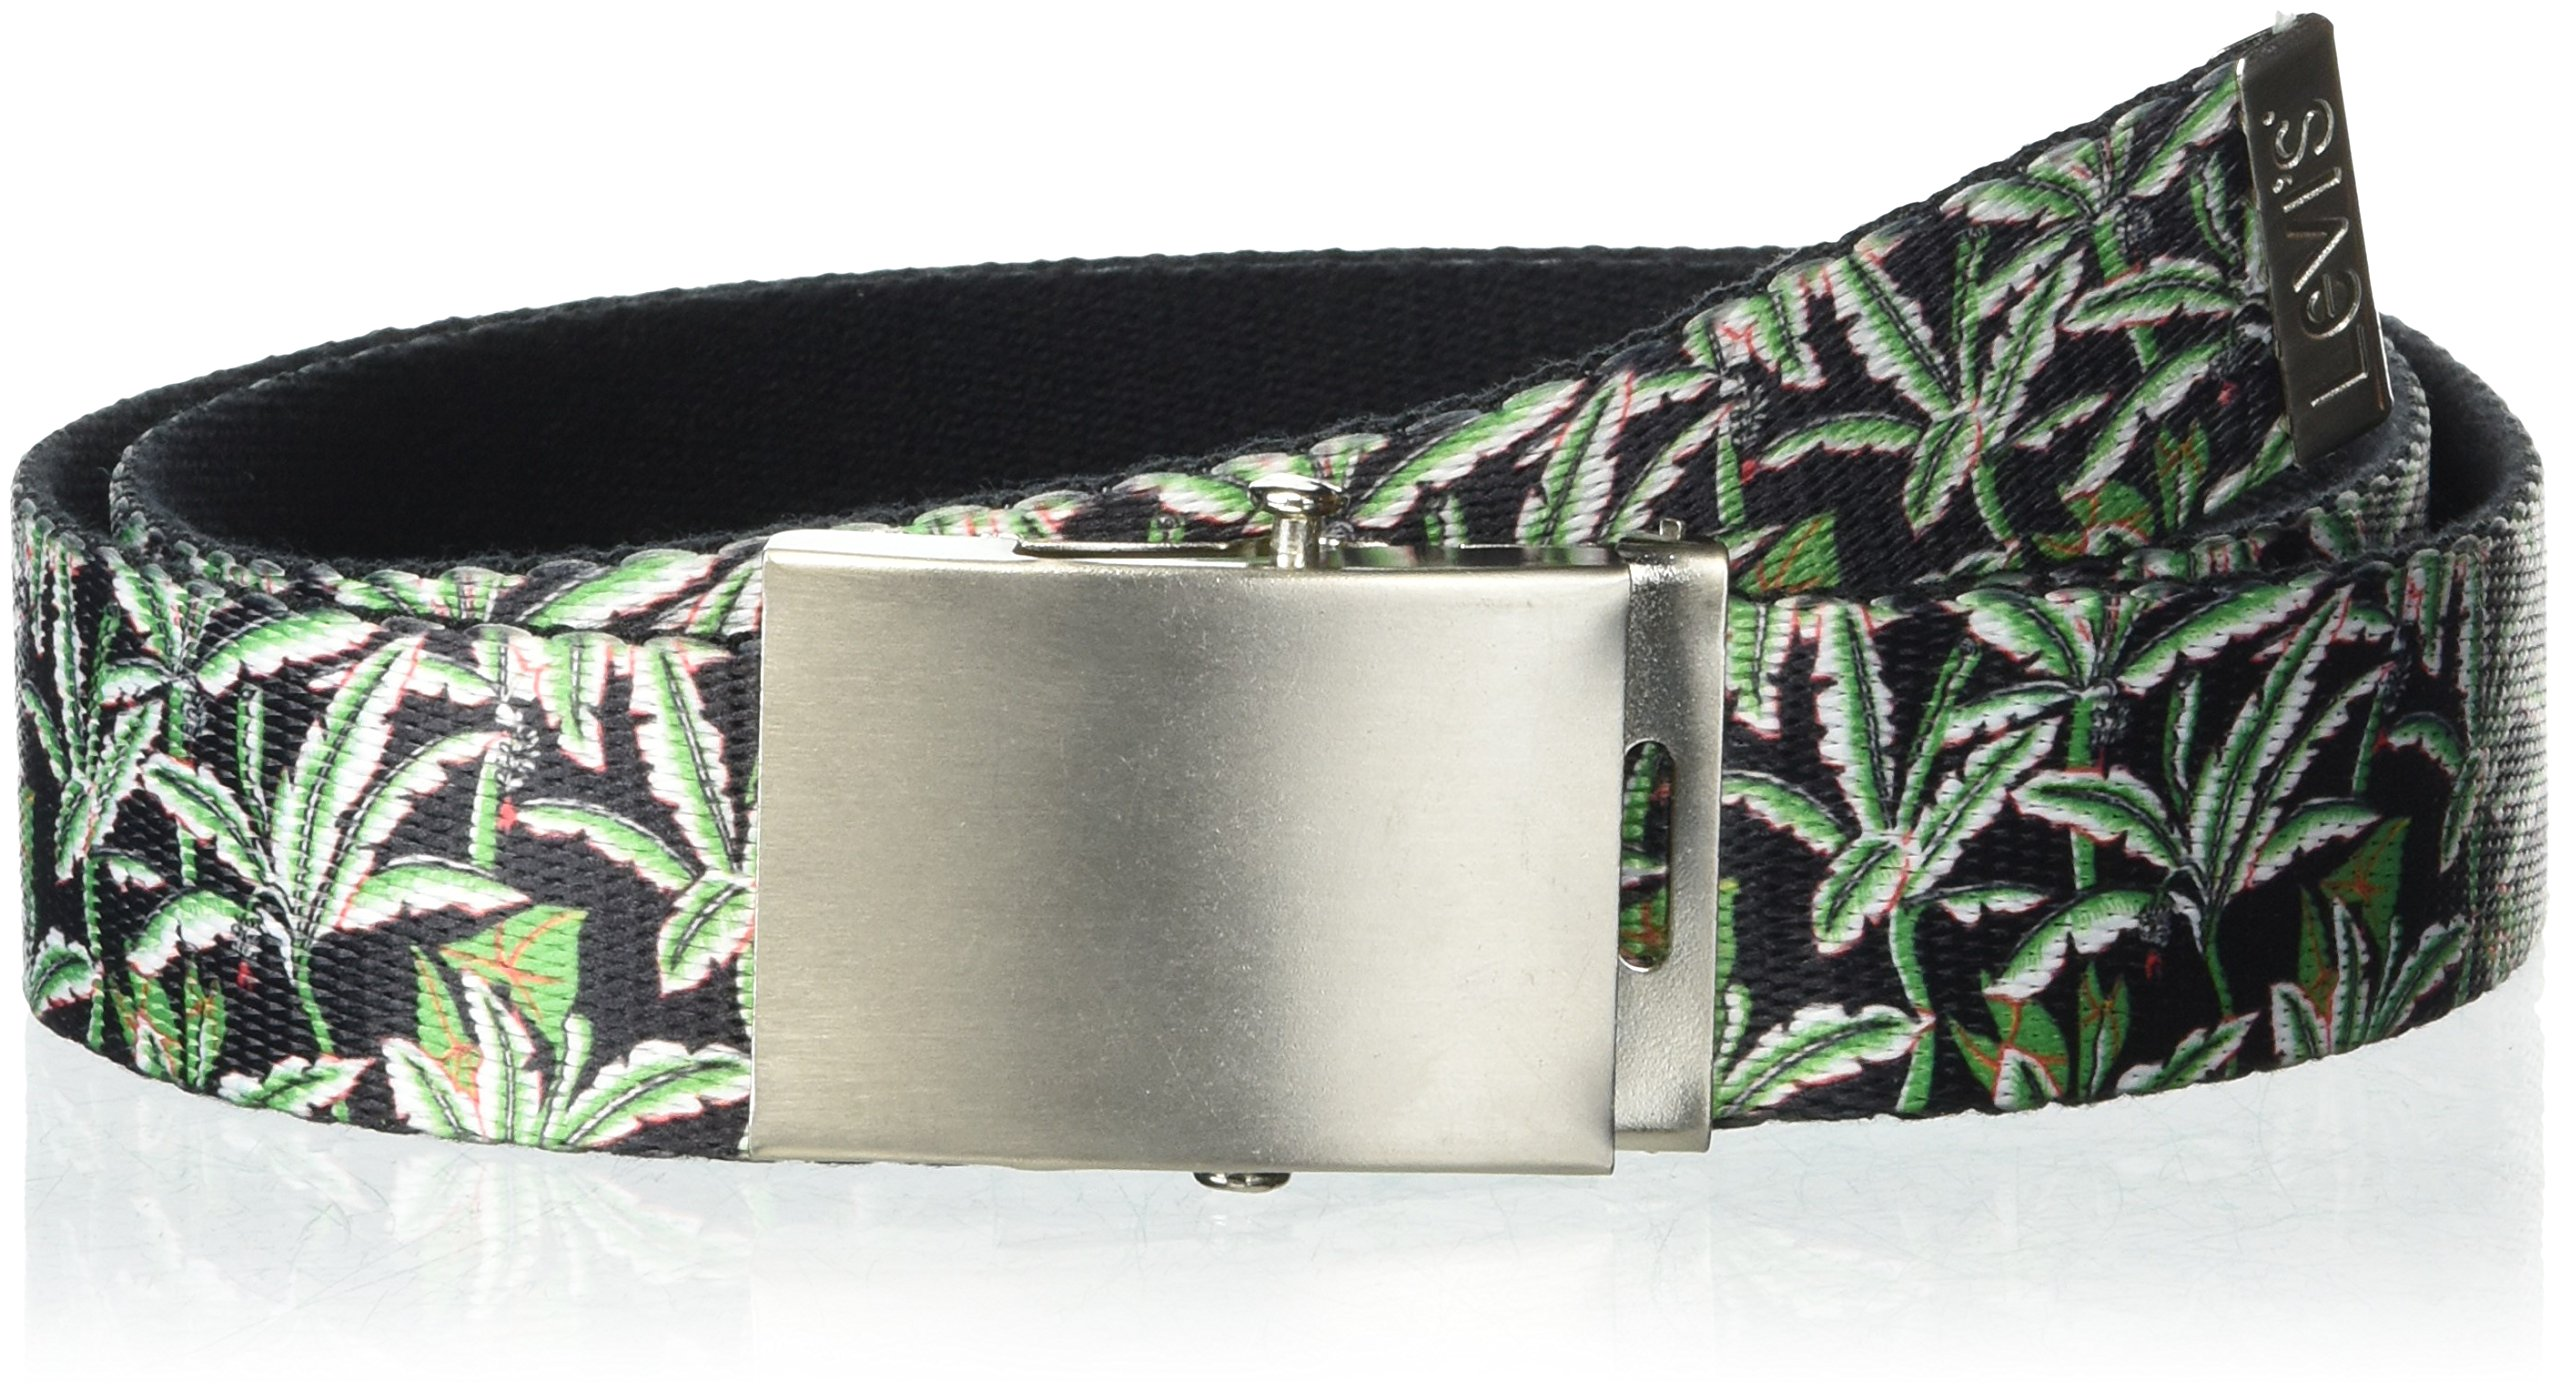 Levi's Men's Military Web Belt - Casual for Jeans Adjustable One sizee Cotton Strap and Metal Plaque Buckle-Black/Green, 1size